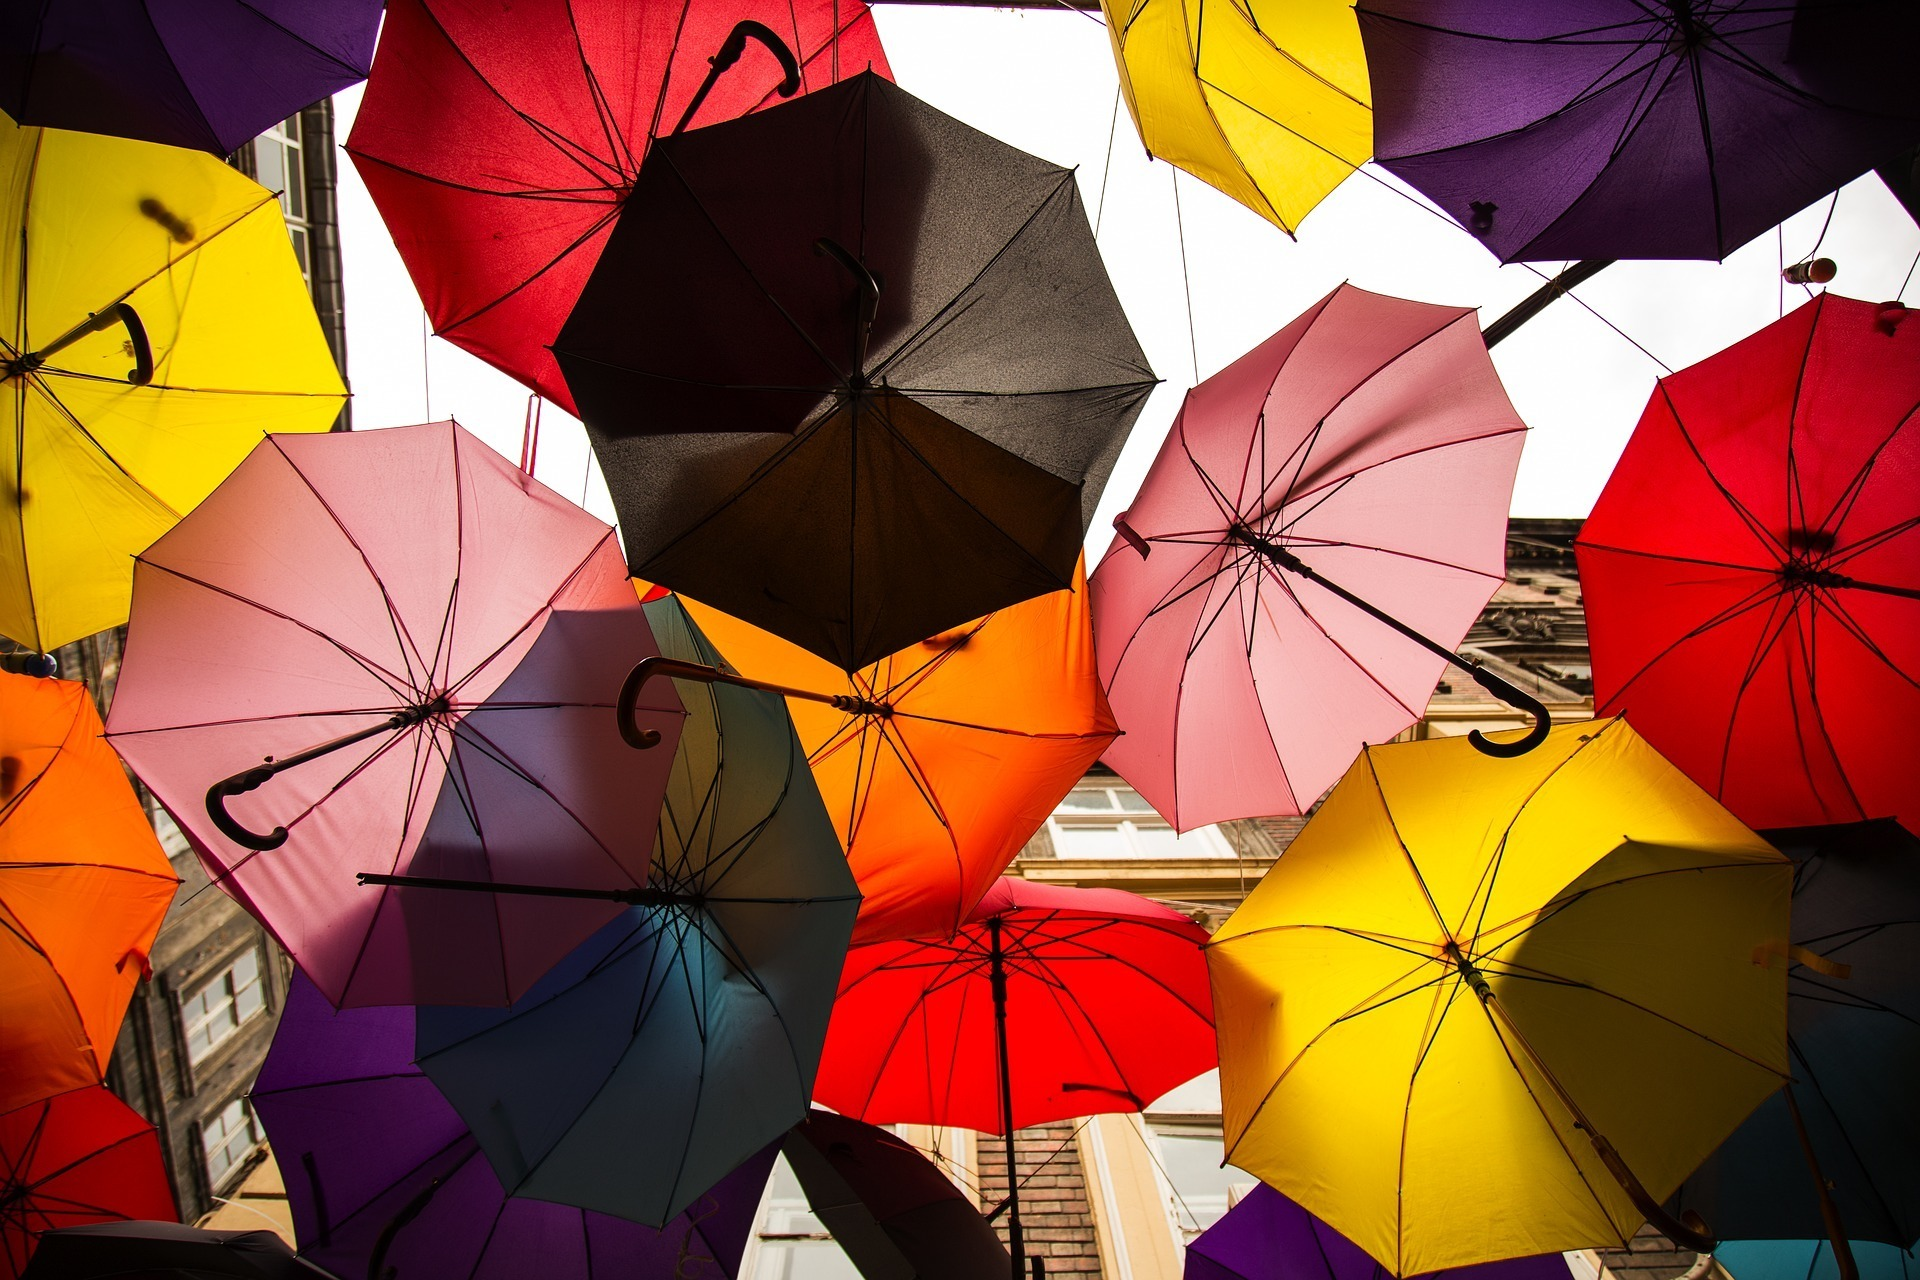 Multiple multicoloureded umbrellas, opened and clustered together.